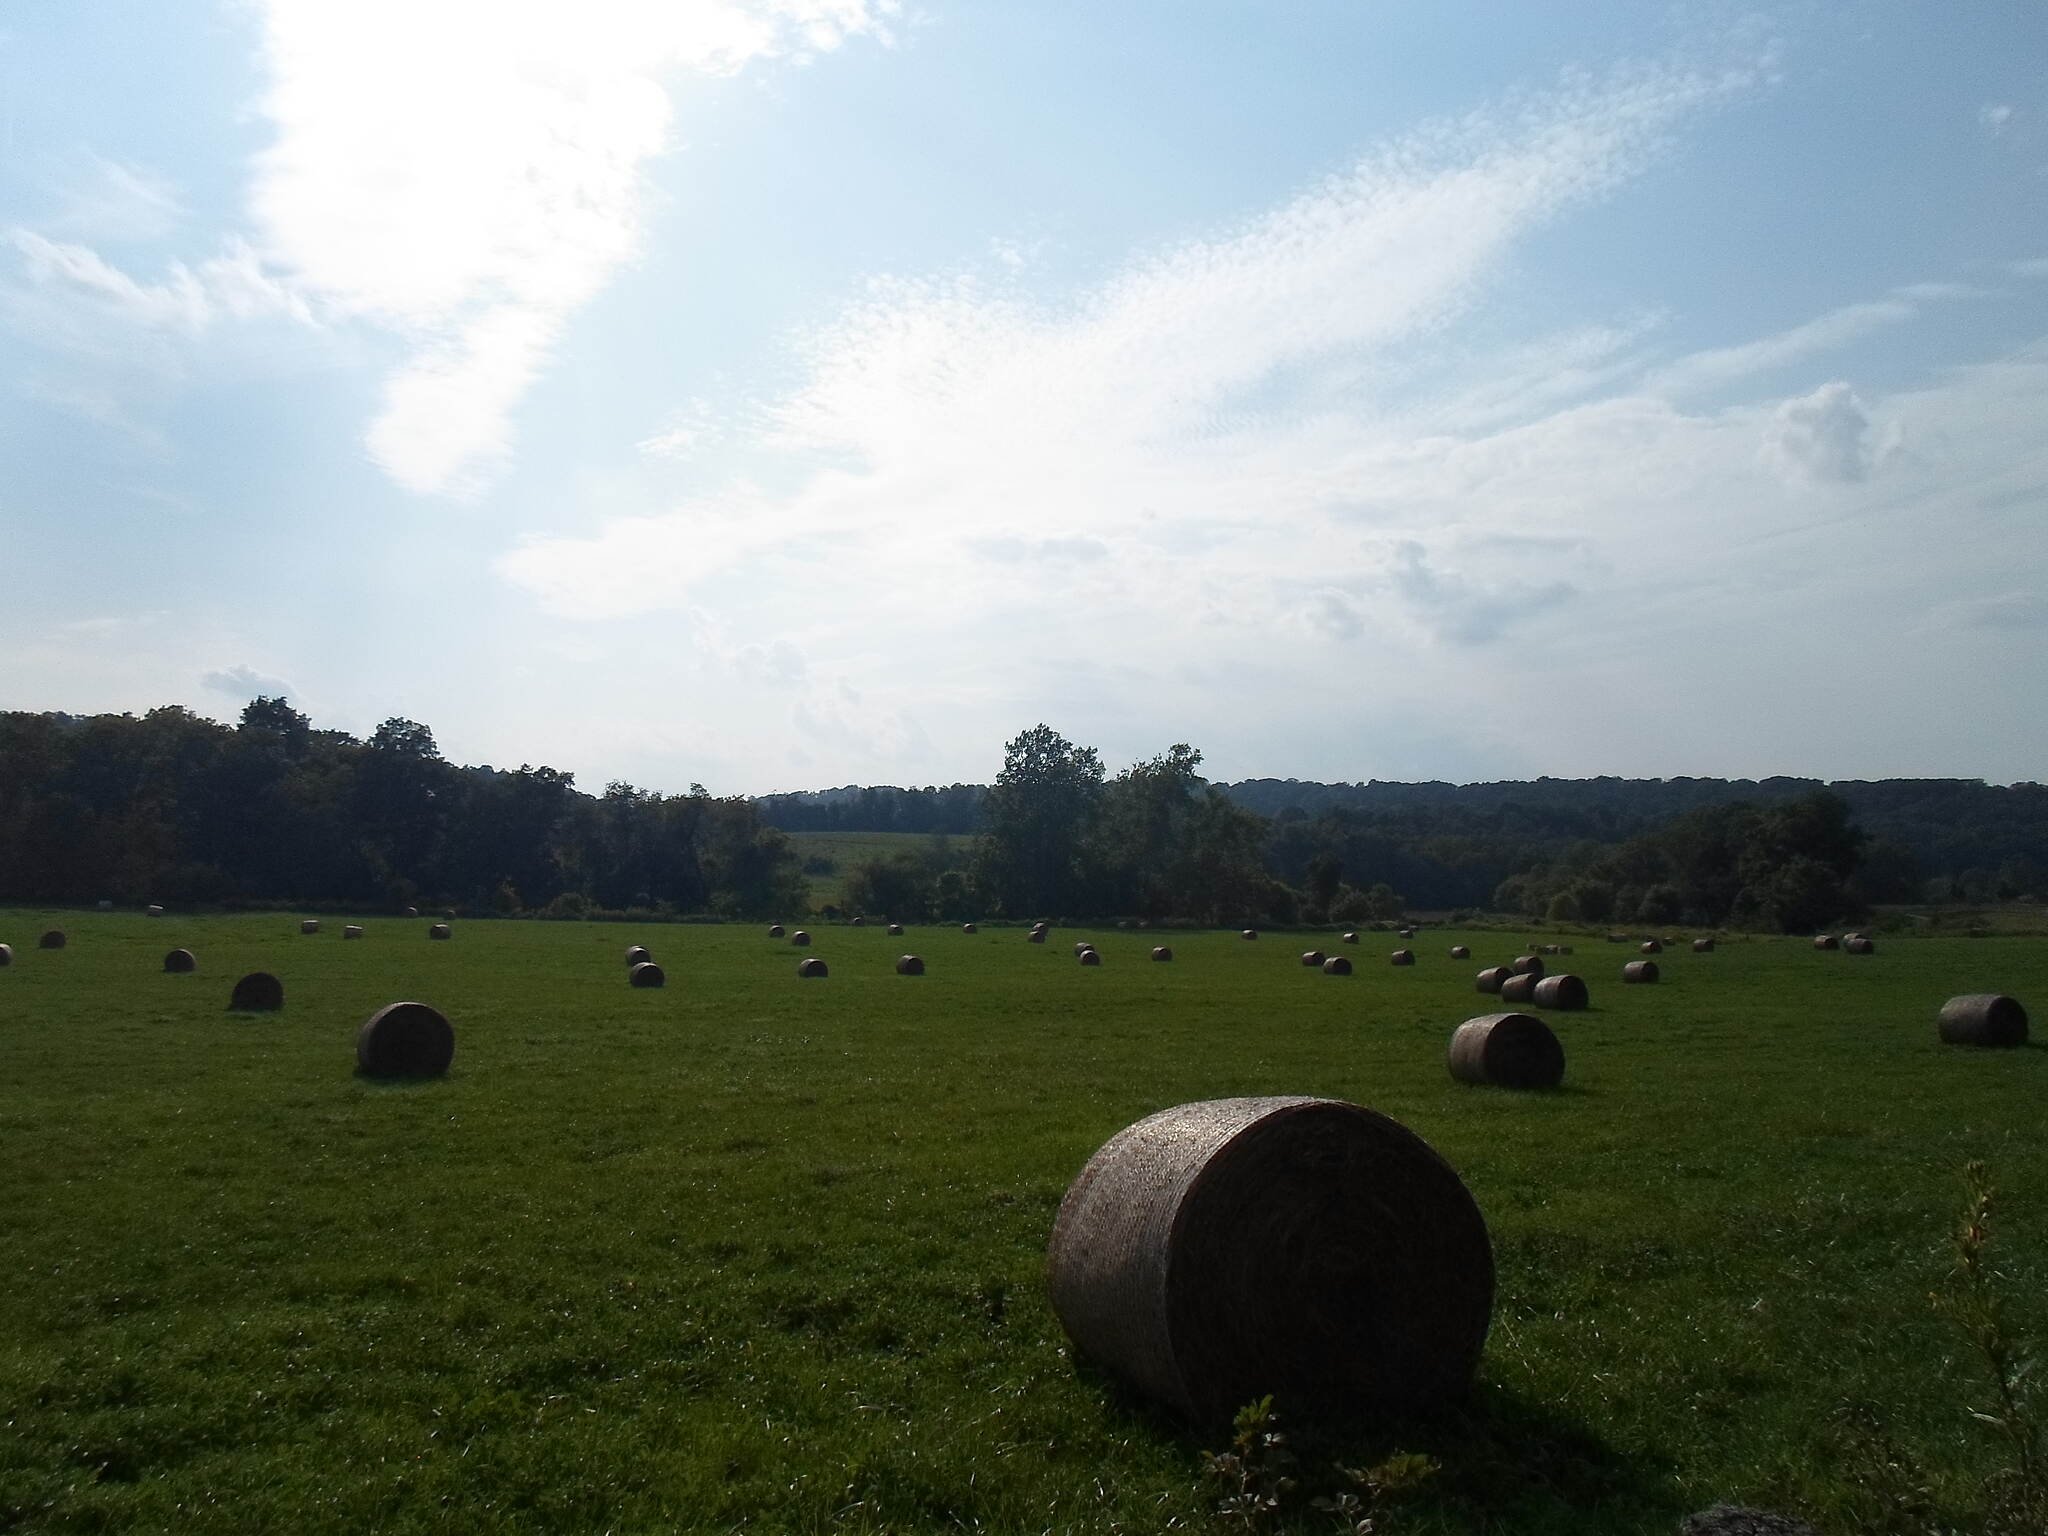 Heritage Rail Trail County Park Heritage Rail Trail Hay bales under a late summer sky. Taken along the trail near Brillharts Station, Sept. 2015.